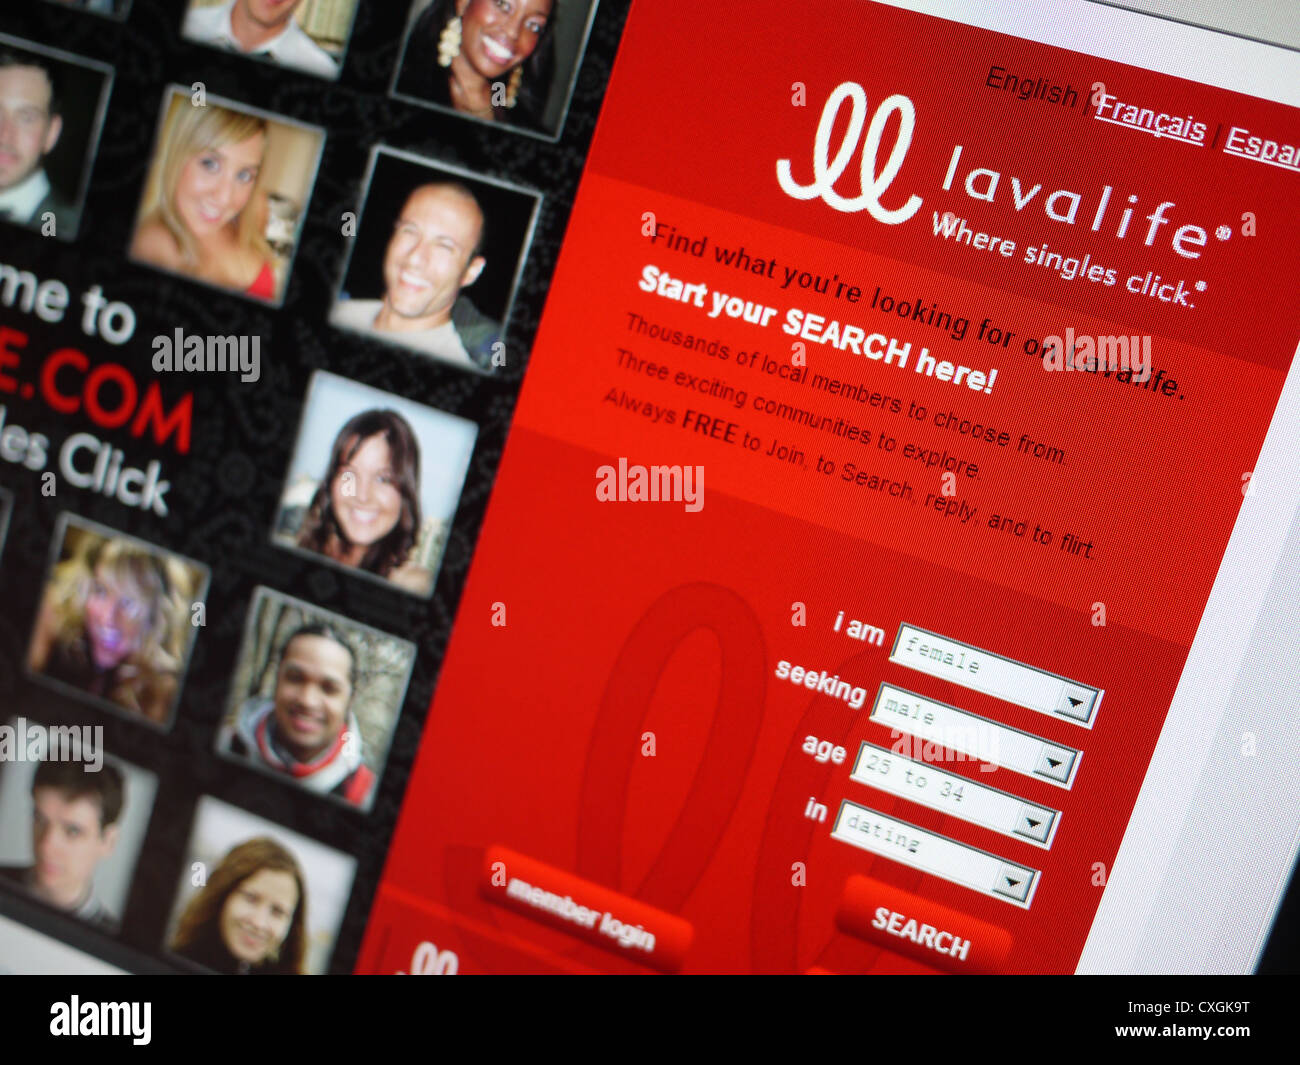 online dating Lavalife